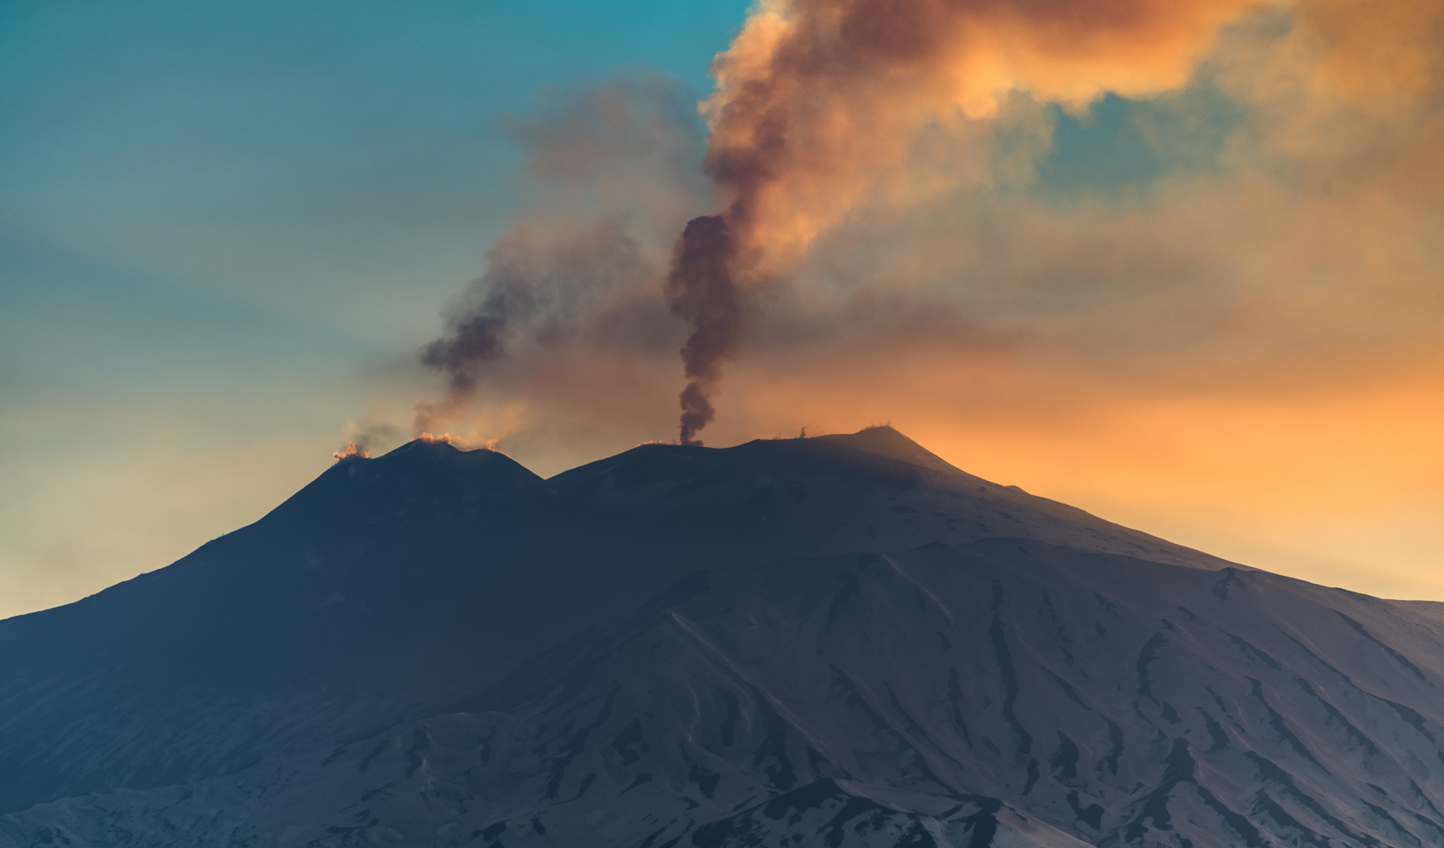 Mount Etna at sunset